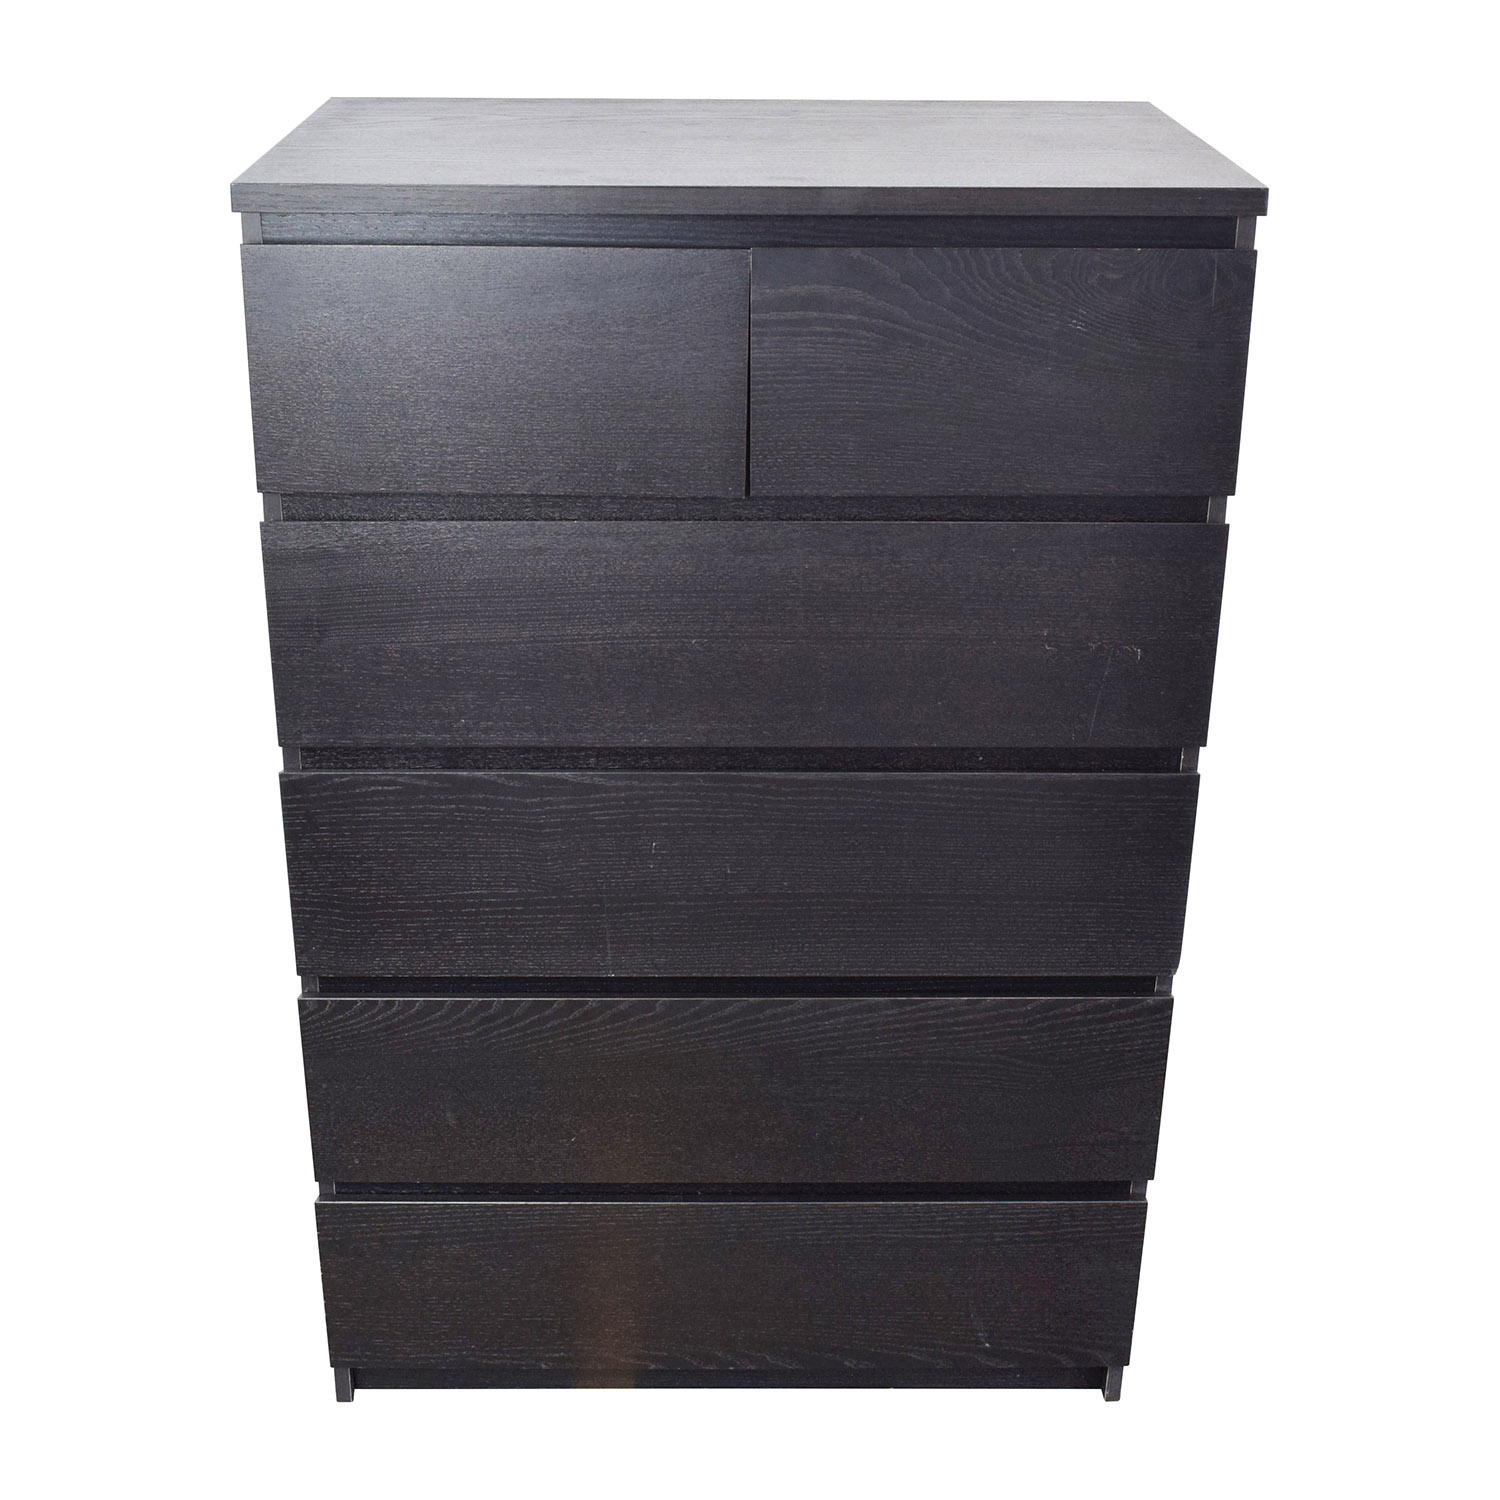 45% OFF - IKEA IKEA Malm Tall 6-Drawer Dresser / Storage